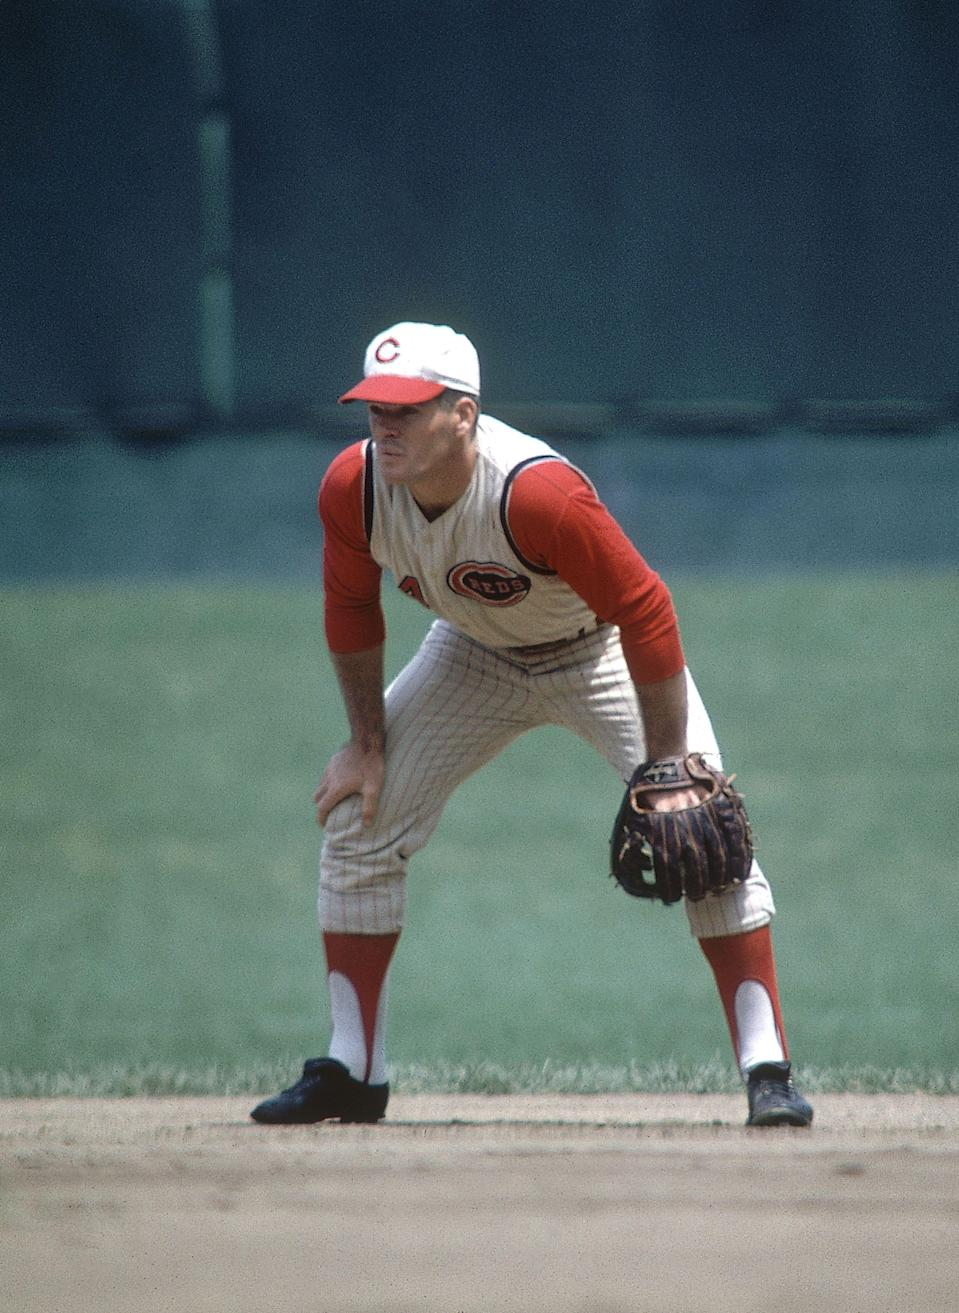 Pete Rose on the field for the Cincinnati Reds during the 1965 season.